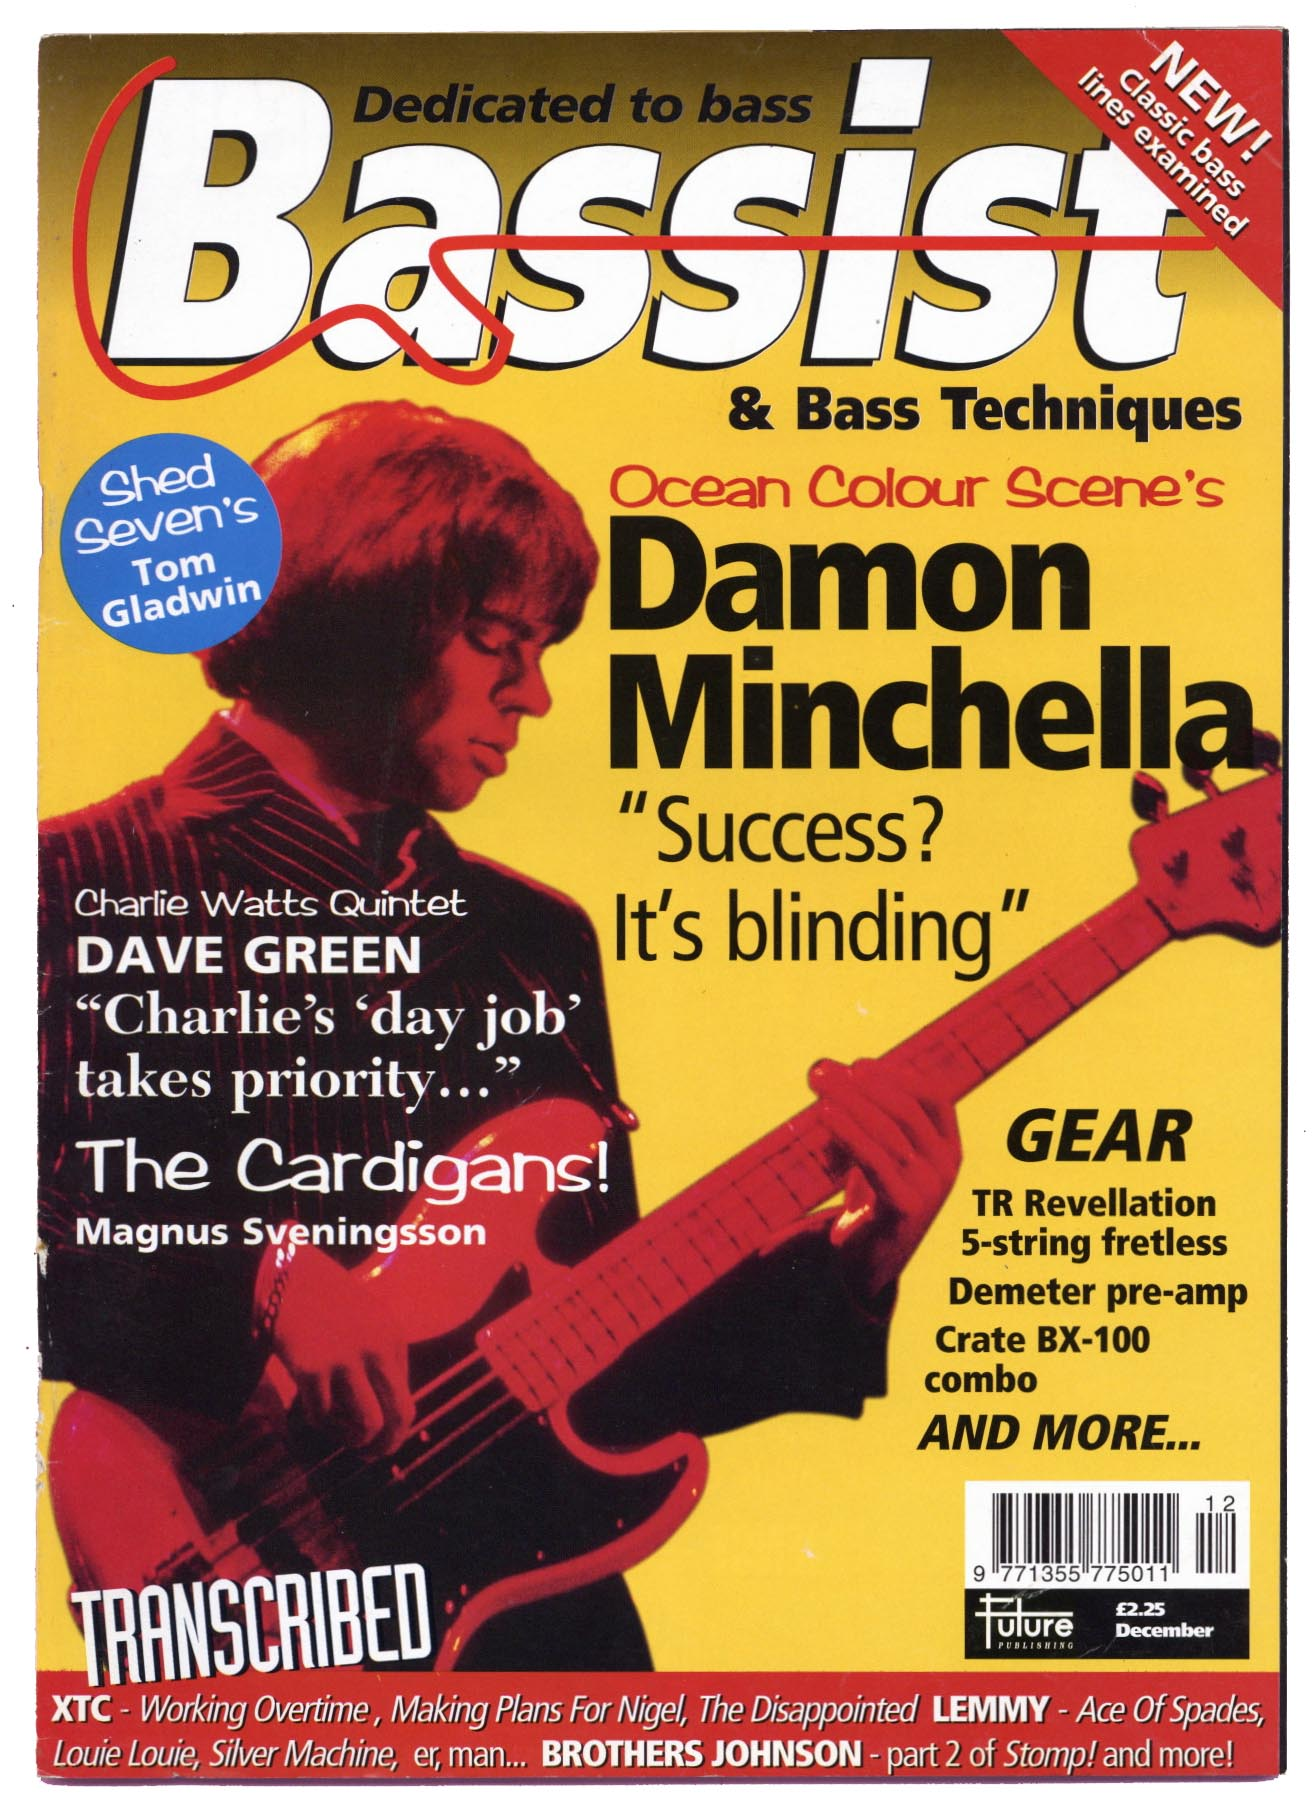 BASSIST Magazine December 1996 Damon Minchella